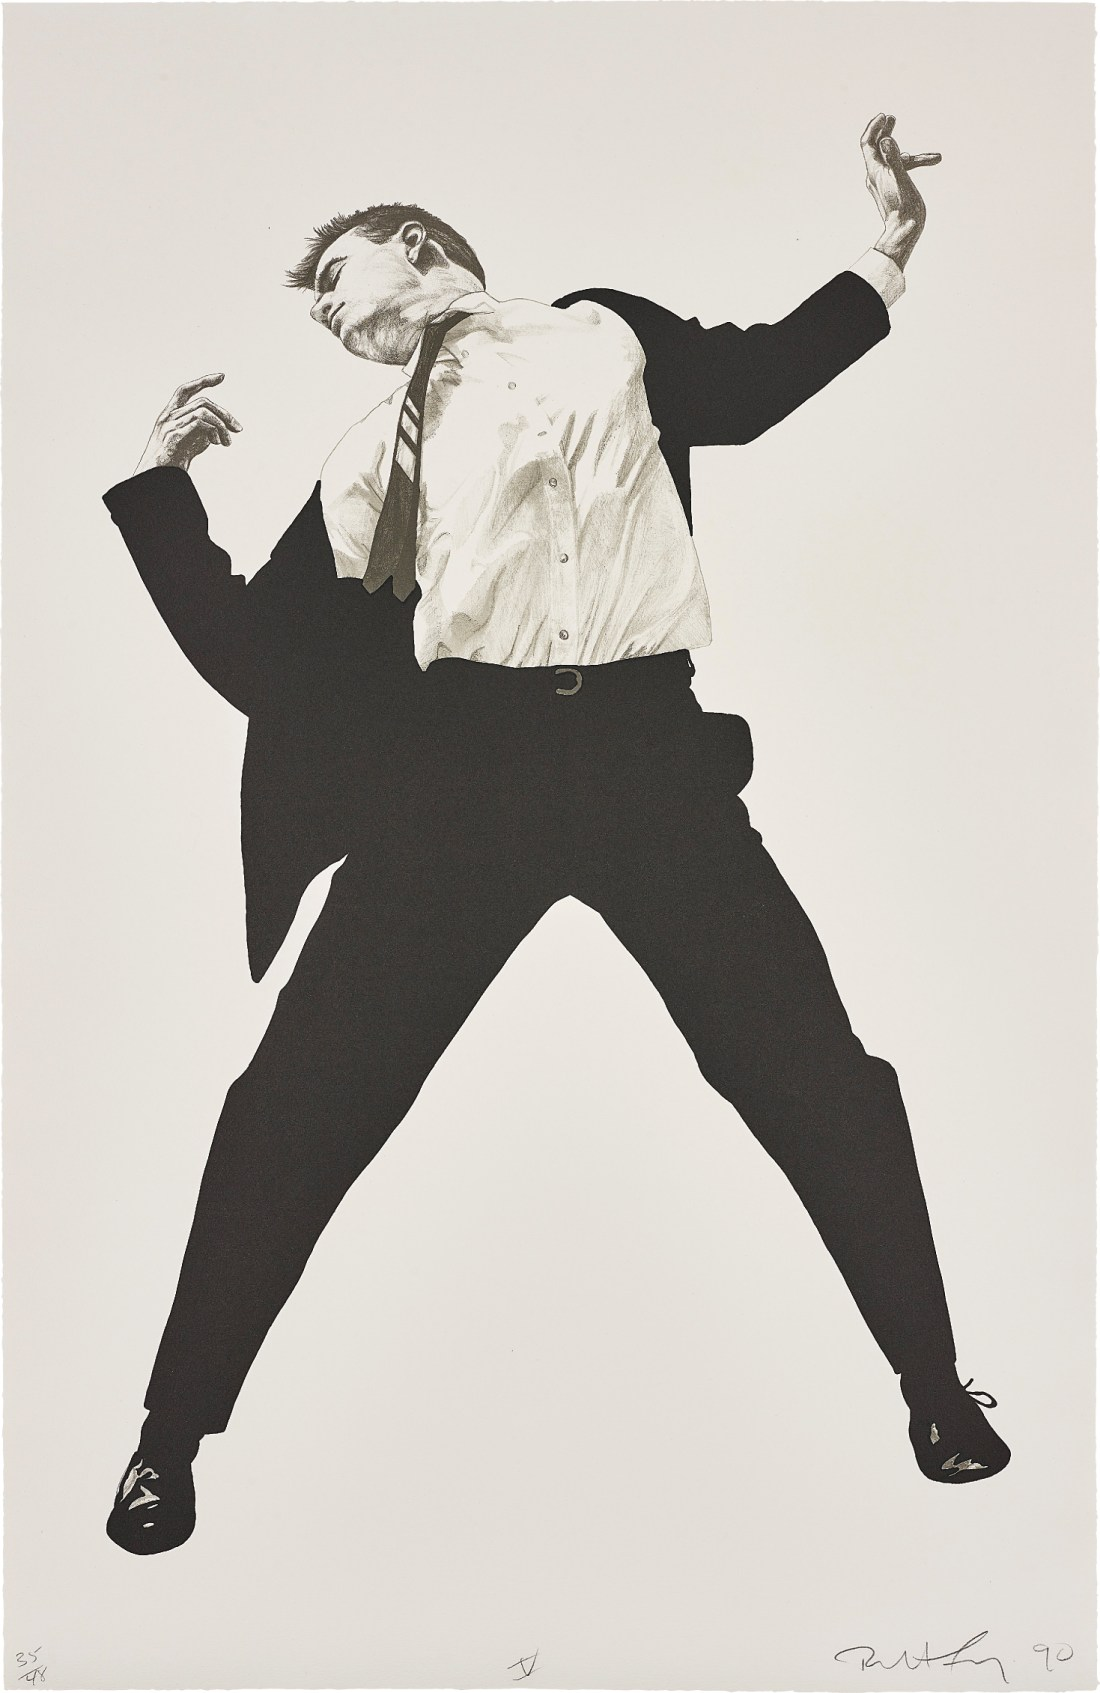 Untitled V, from Men in the Cities, a 1990 lithograph by Robert Longo. It's number 35 of a run of 48.